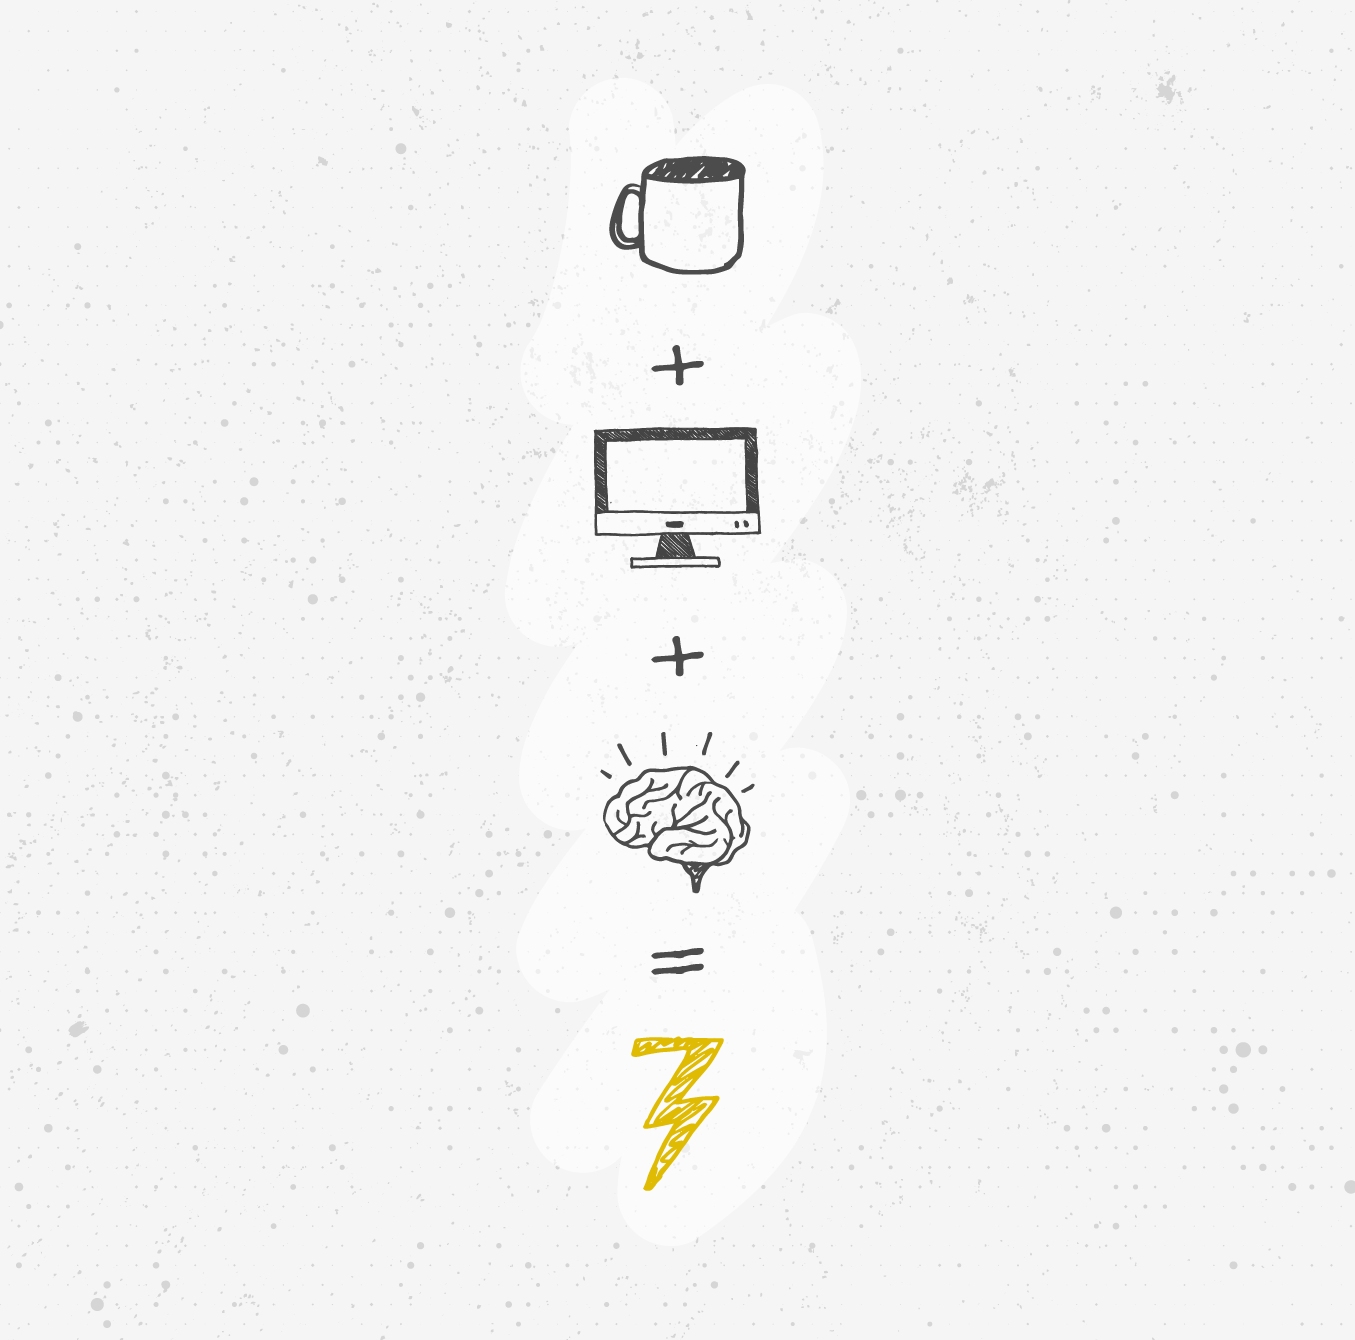 Coffee + Technology + Brain power = A 237 Marketing + Web Flash of Lightning